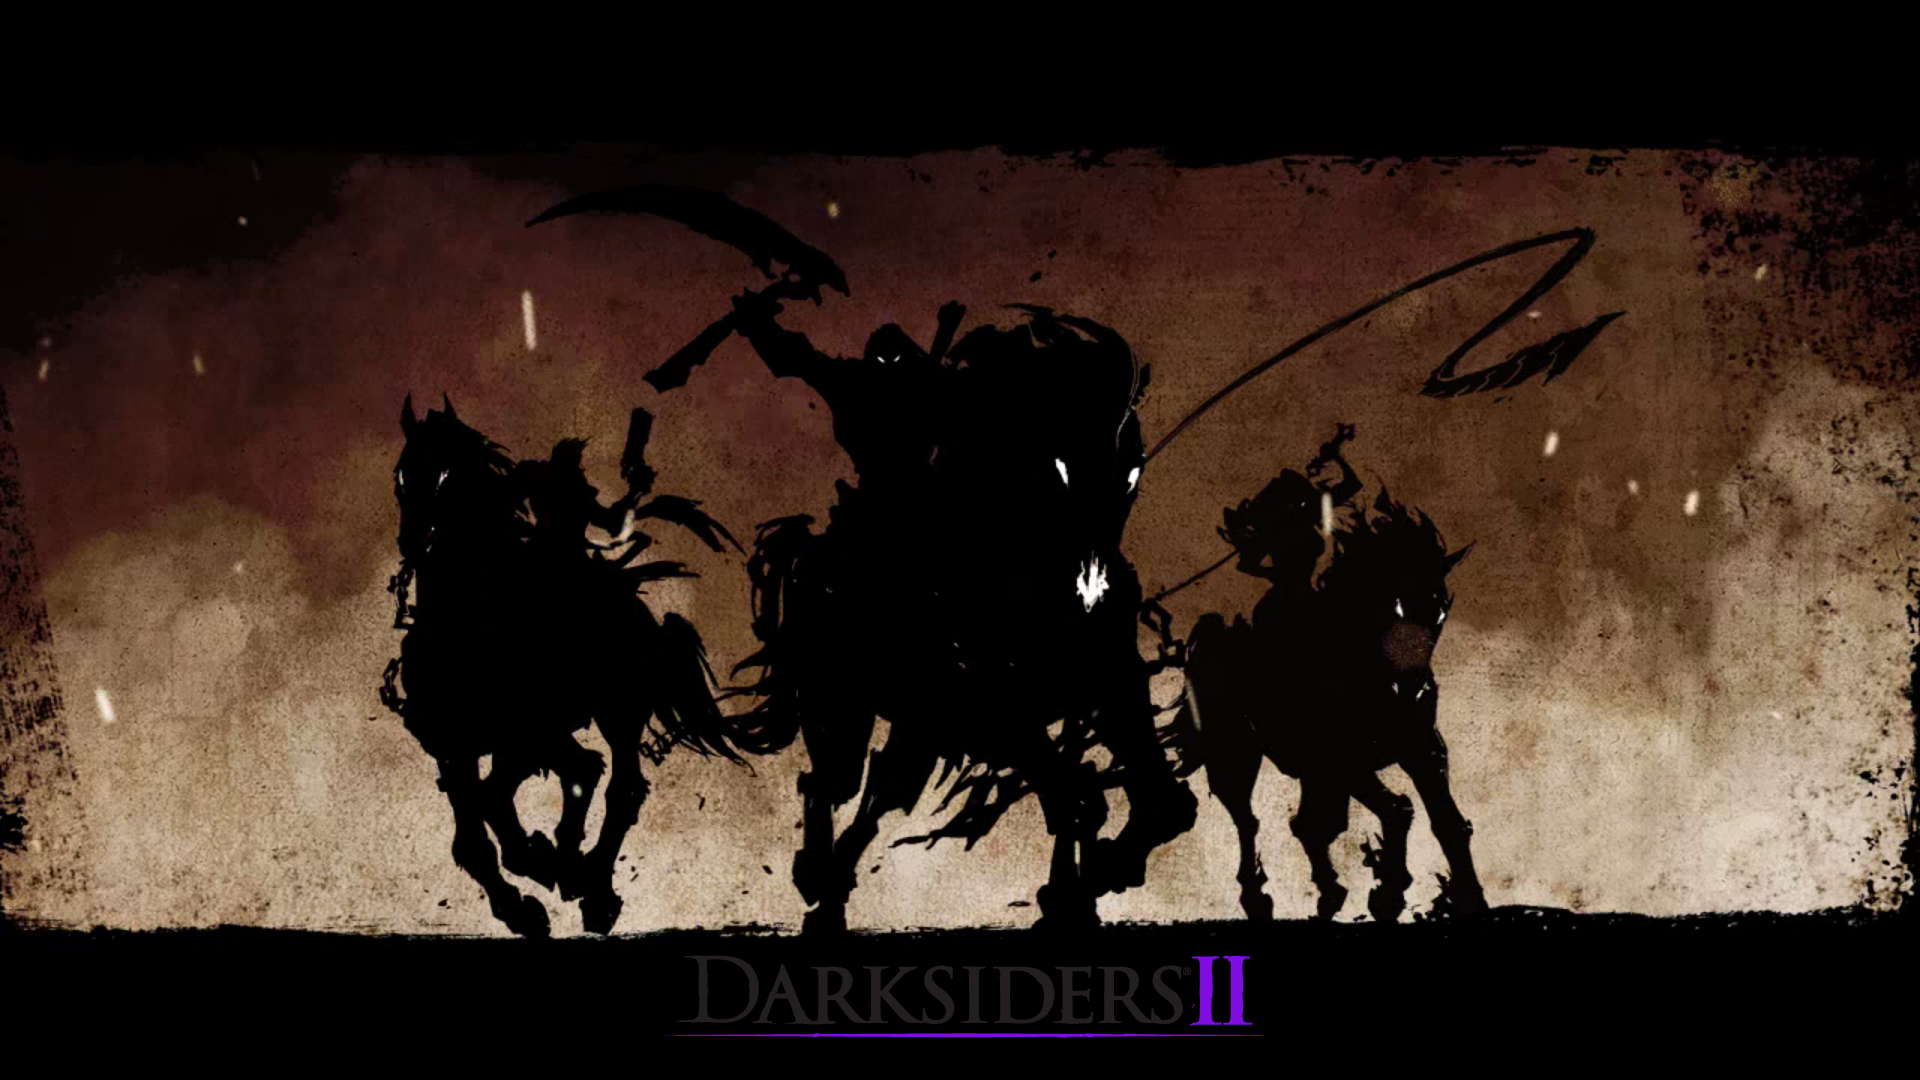 Darksiders II Computer Wallpapers, Desktop Backgrounds 1920x1080